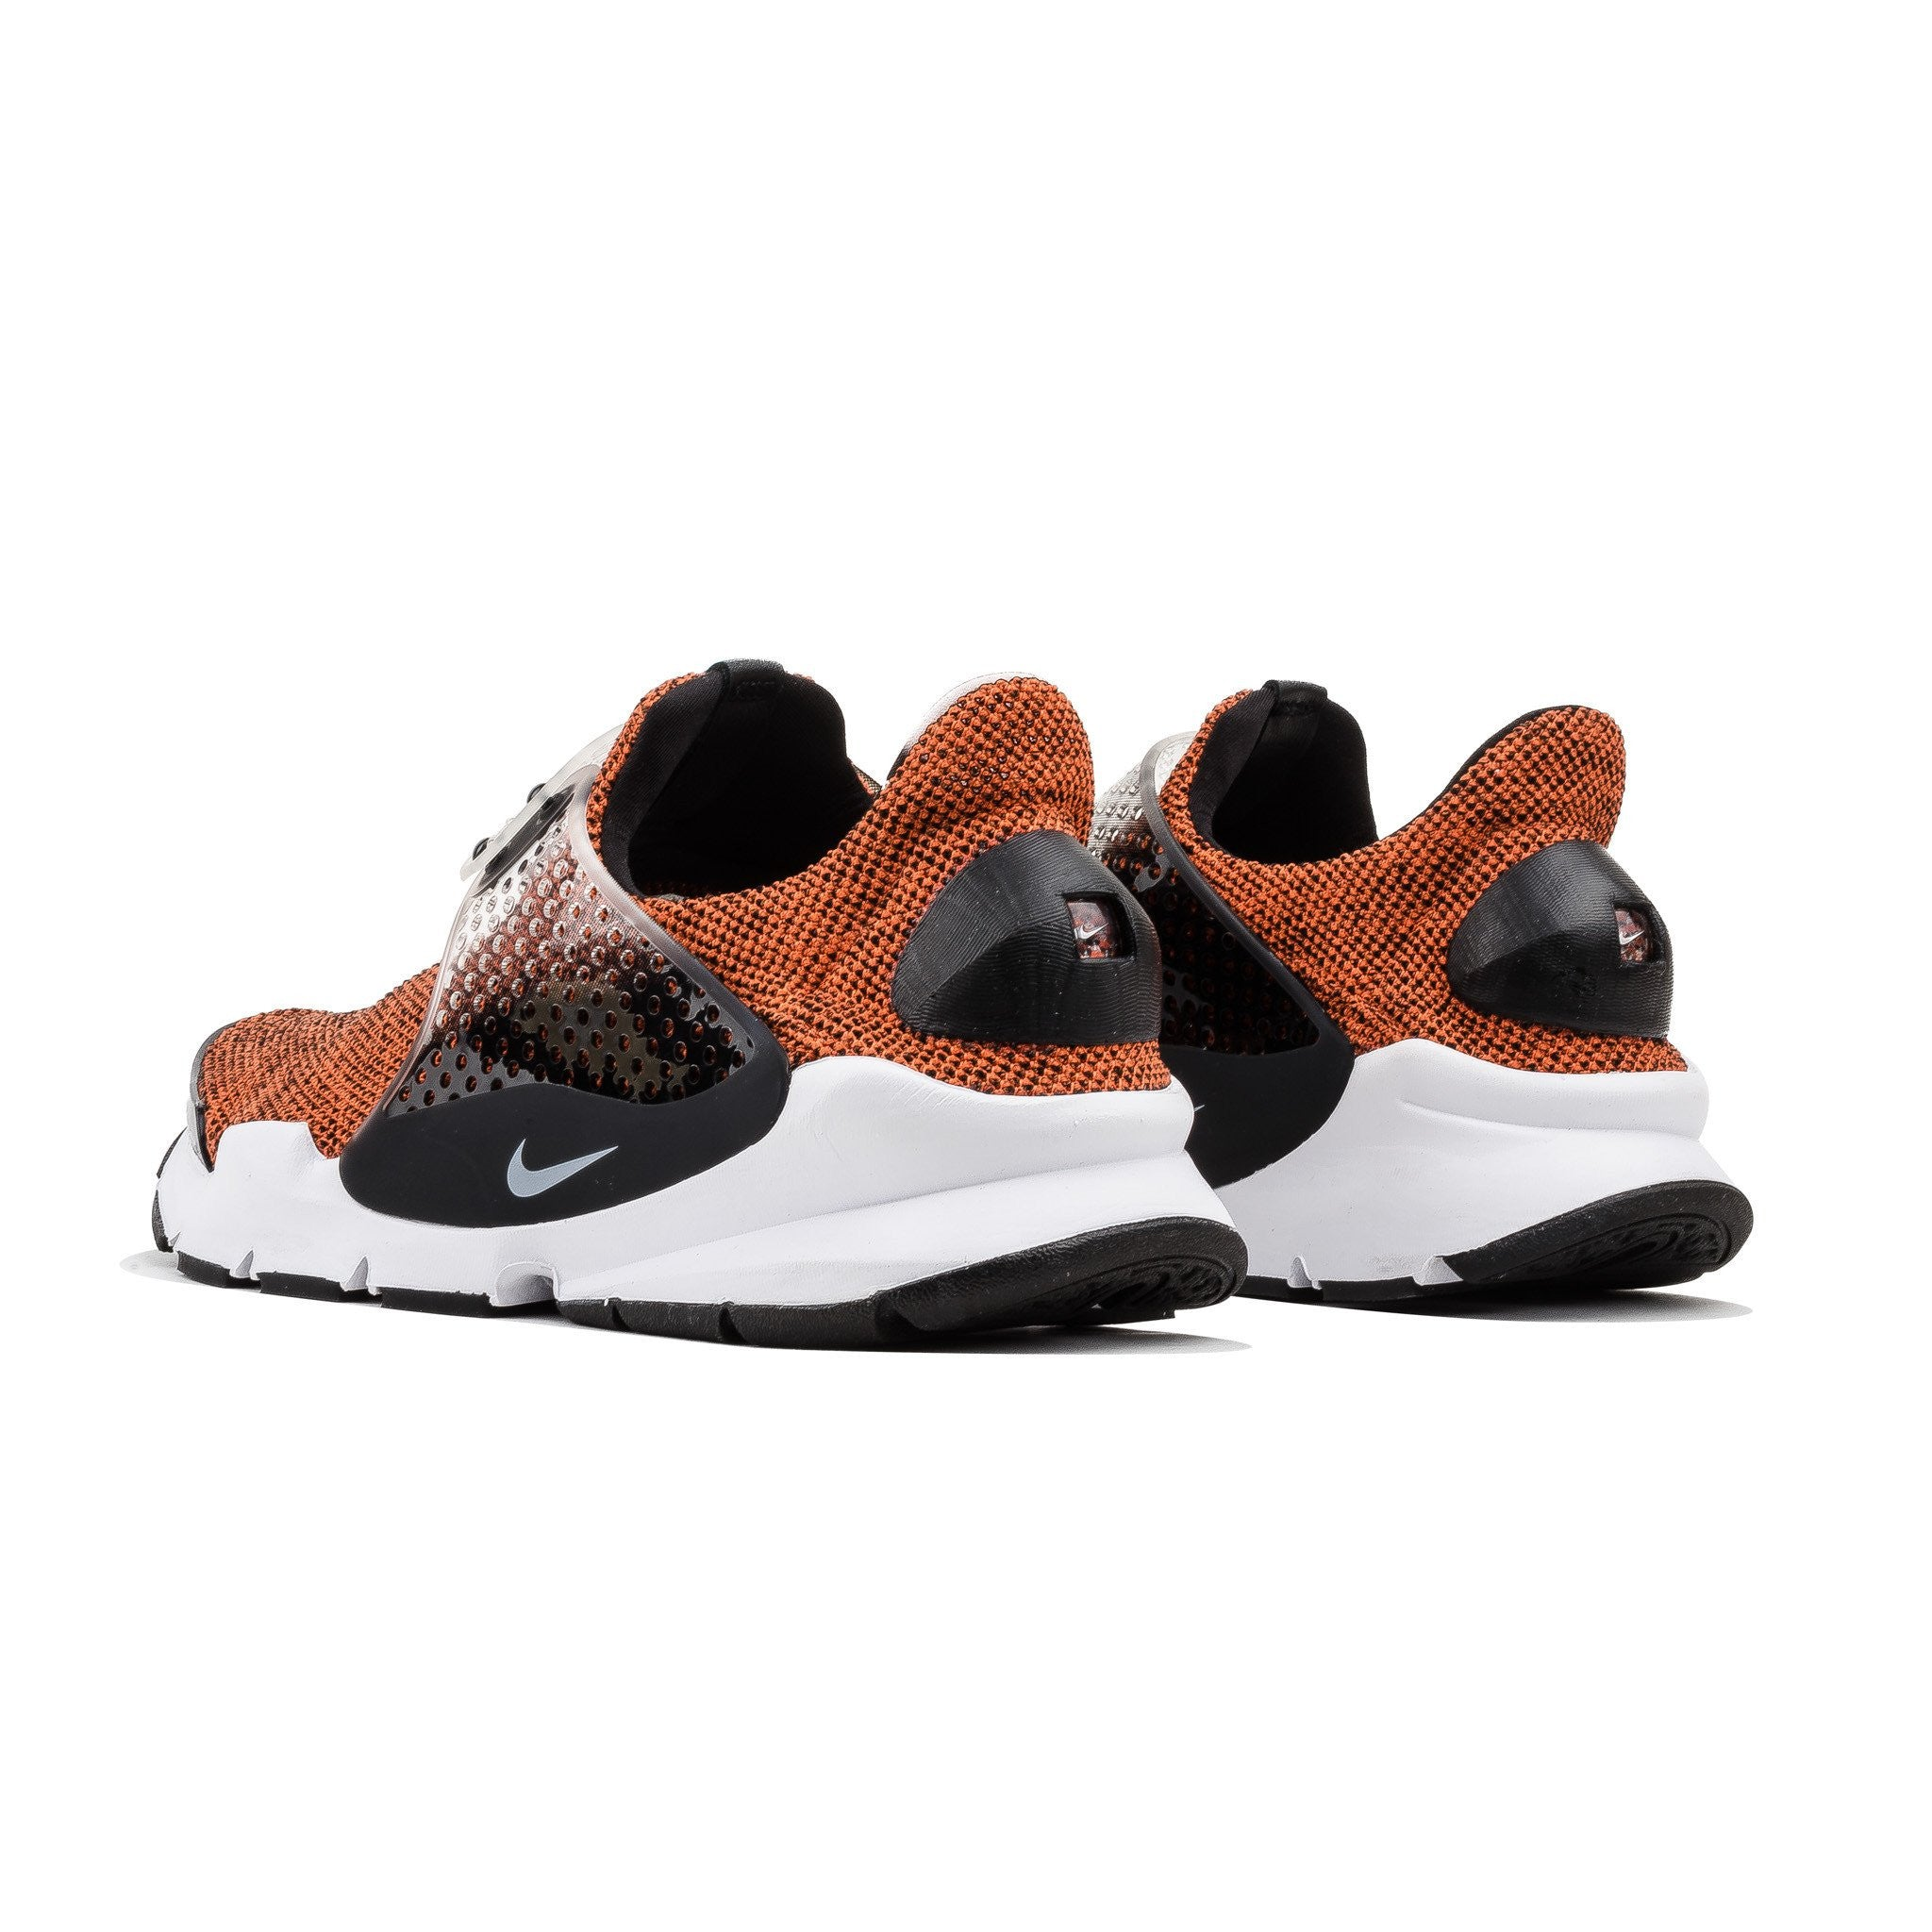 ... Nike Sock Dart SE 911404-801 Terra Orange ... 4550167b24